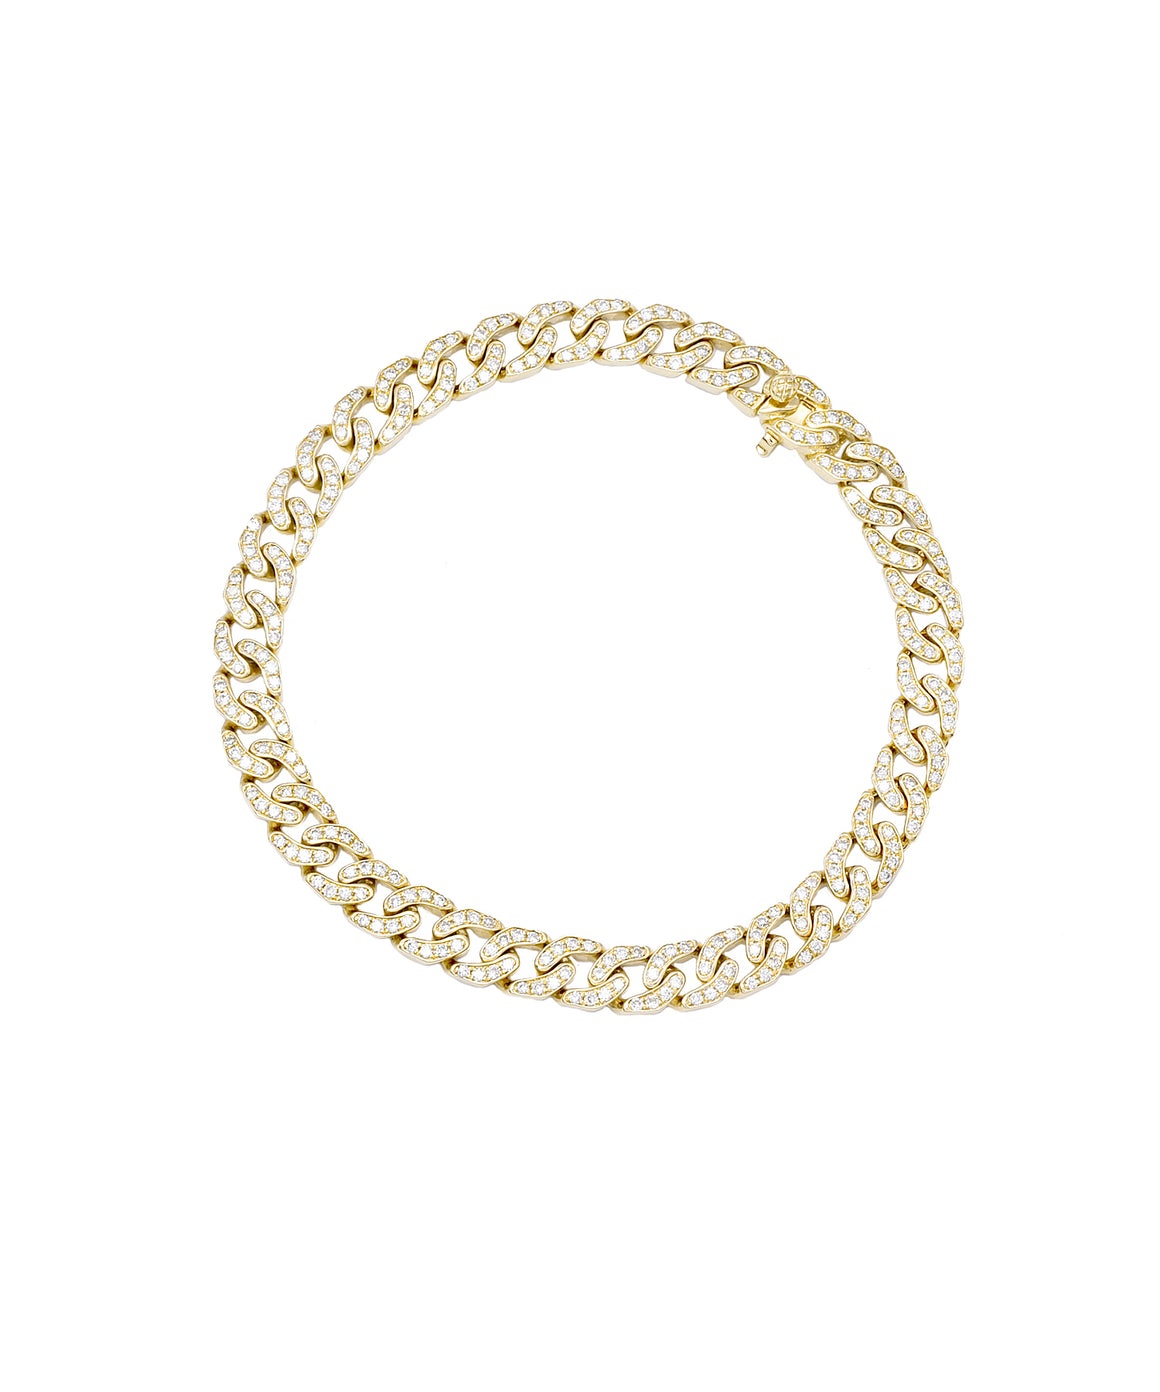 Curb Link Diamond Bracelet in Yellow Gold